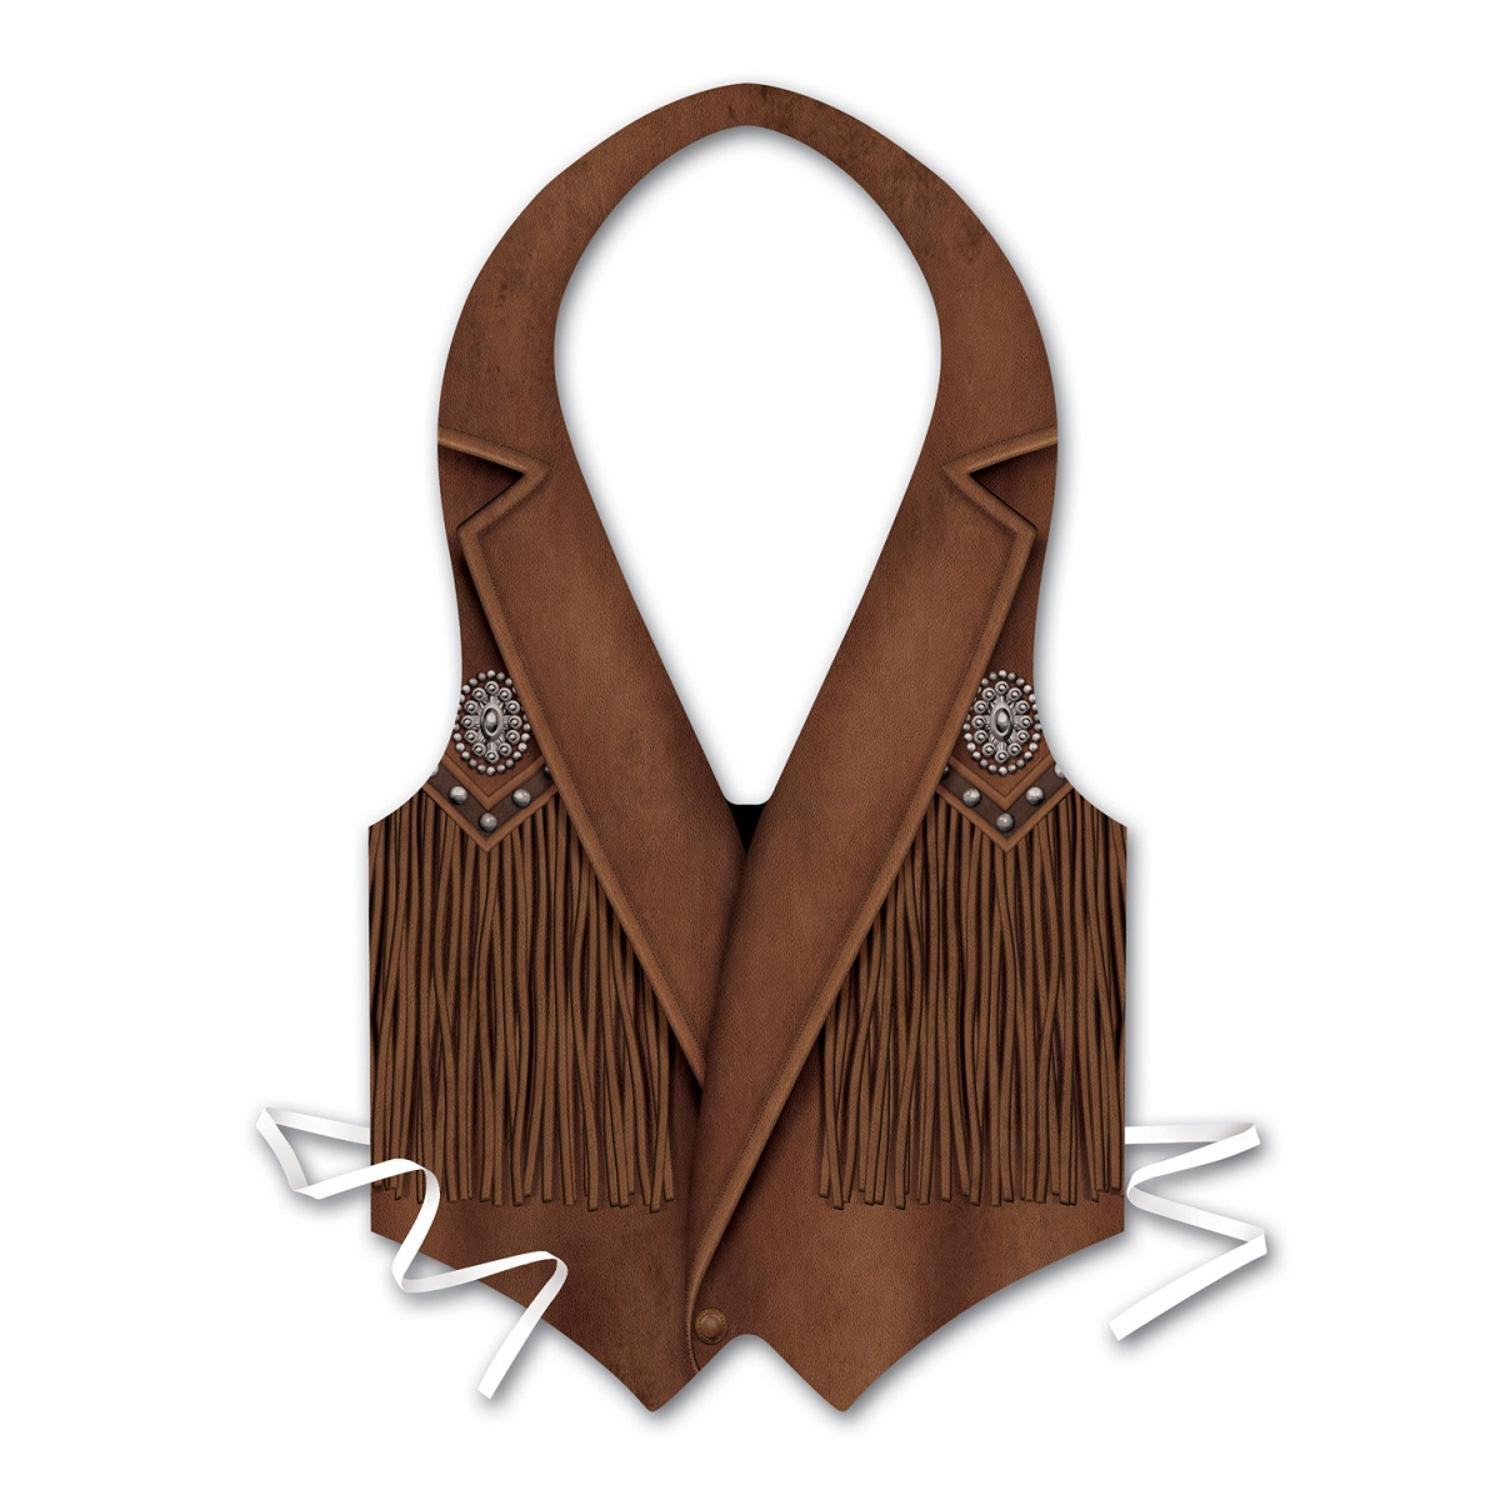 Club Pack of 24 Plastic Cowboy Vest with Fringe Costume Accessory